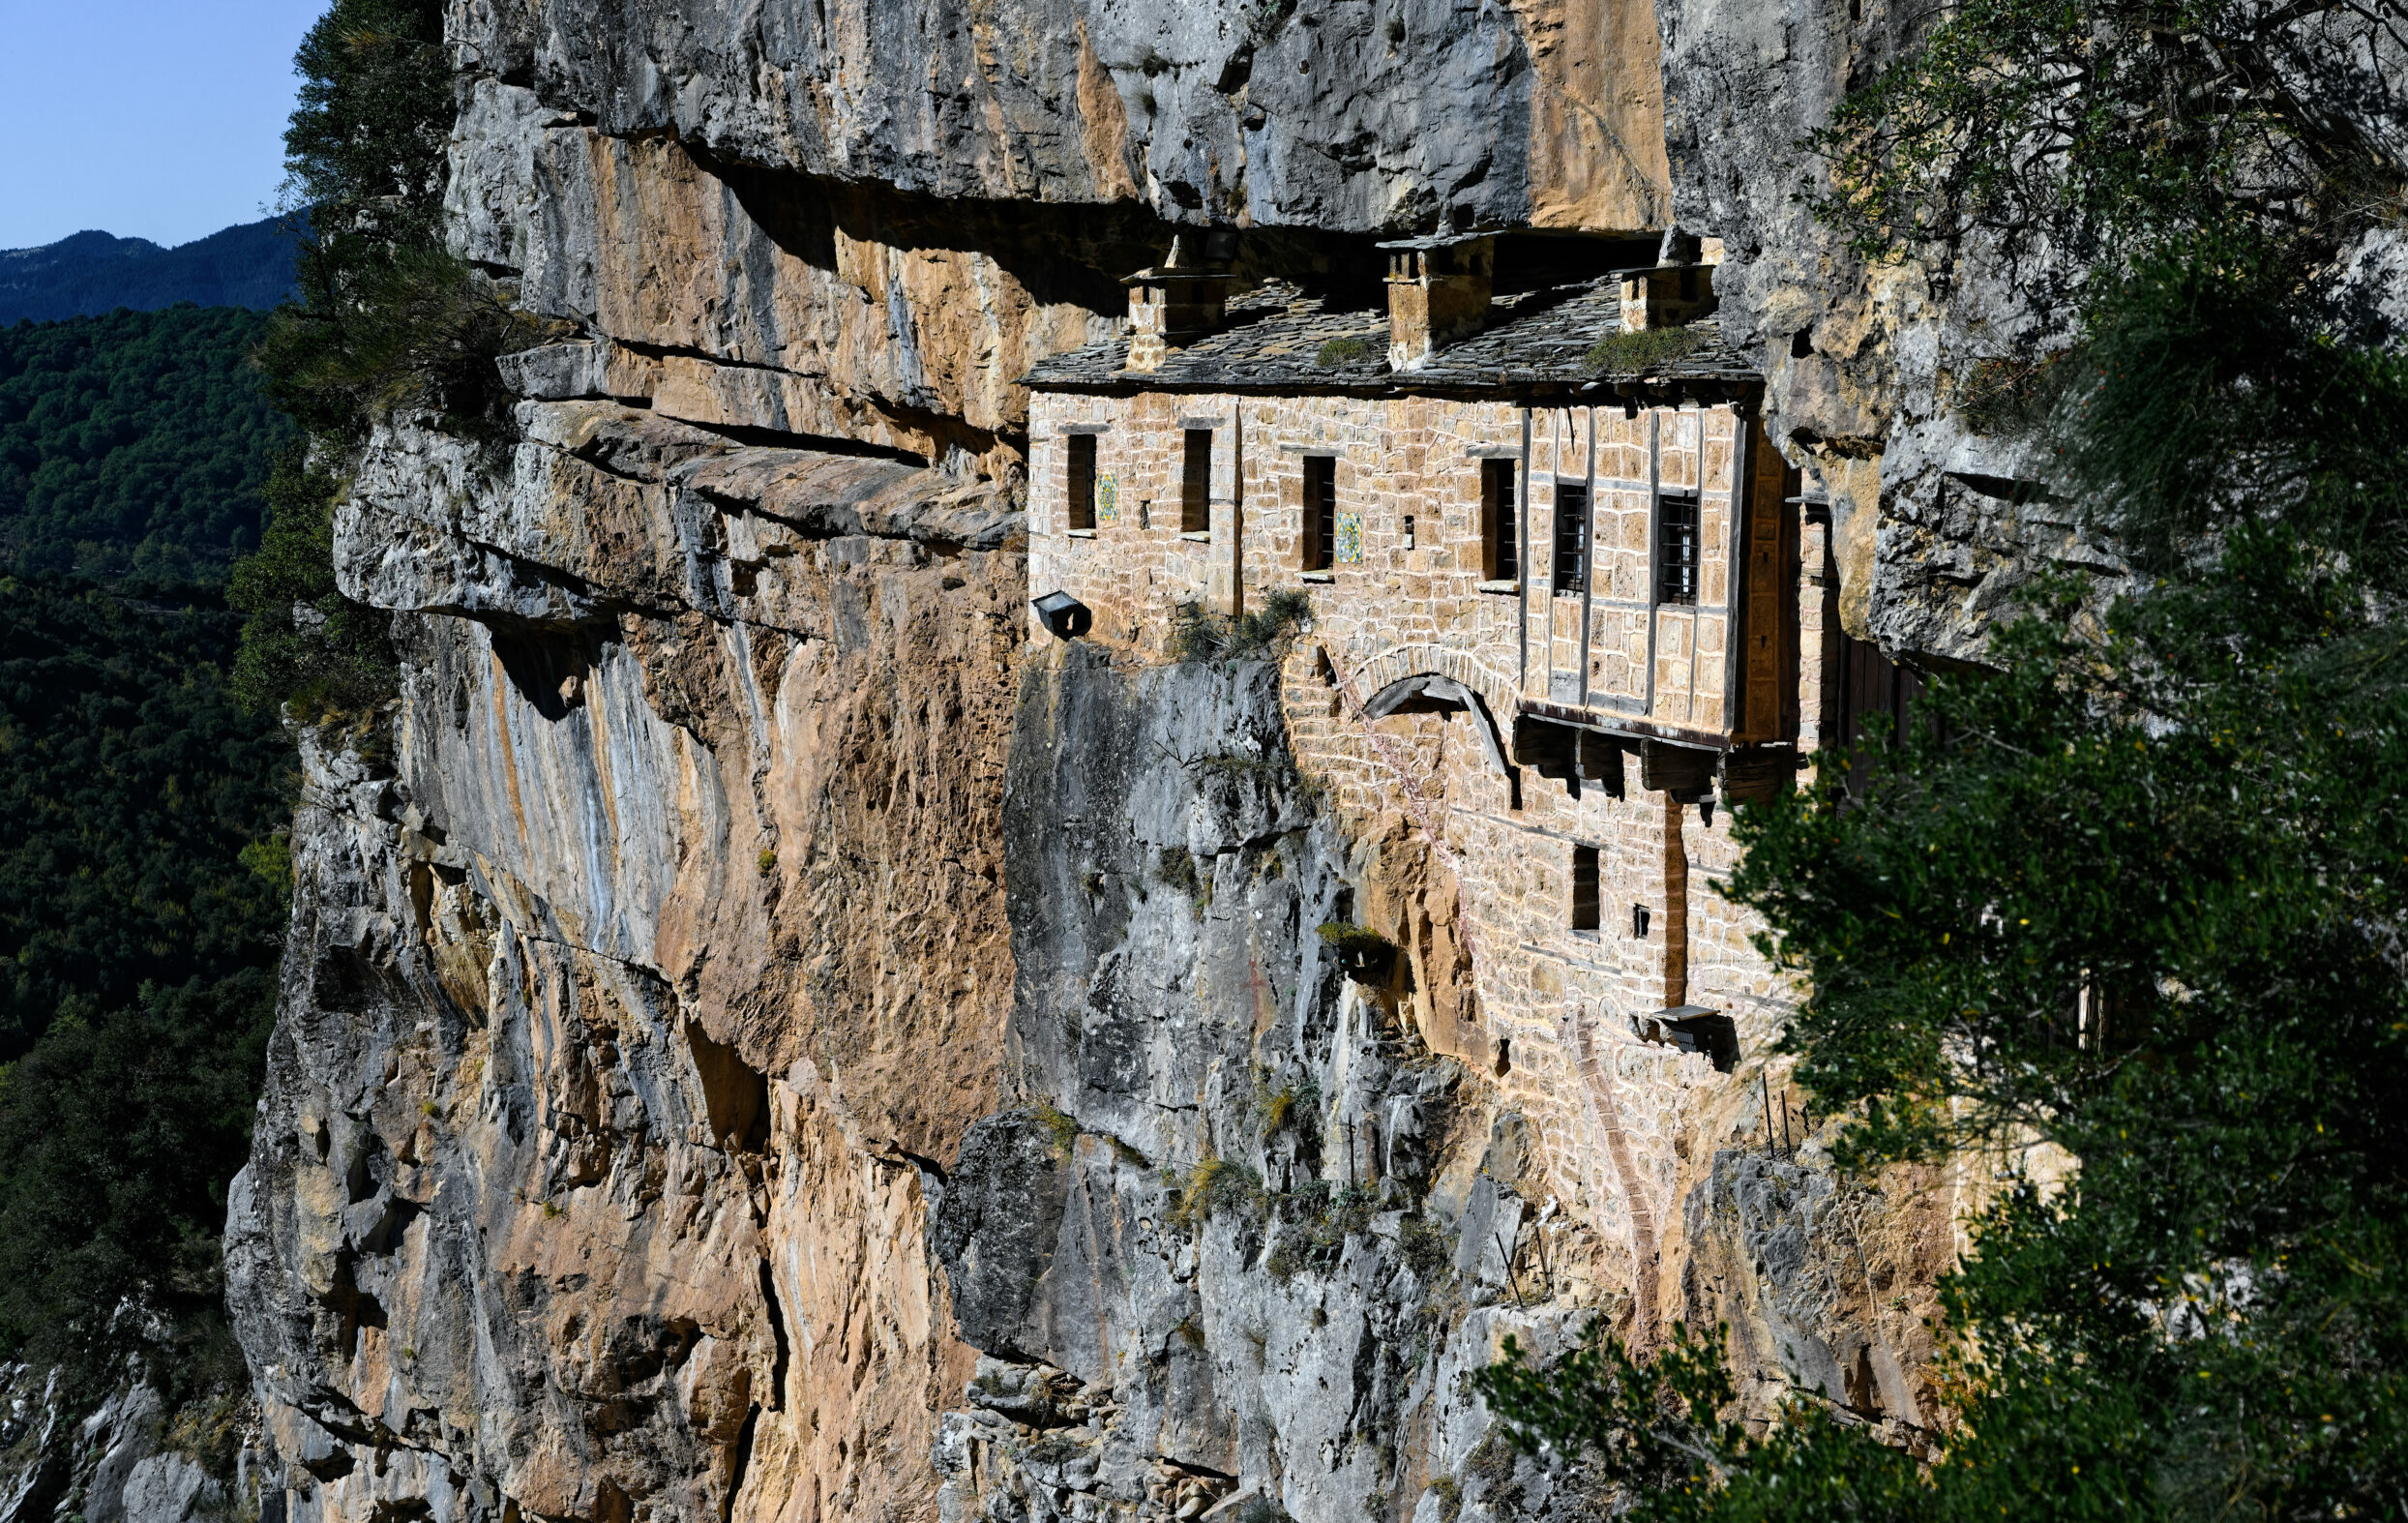 Kipina Monastery: The monastery that is wedged in the rock